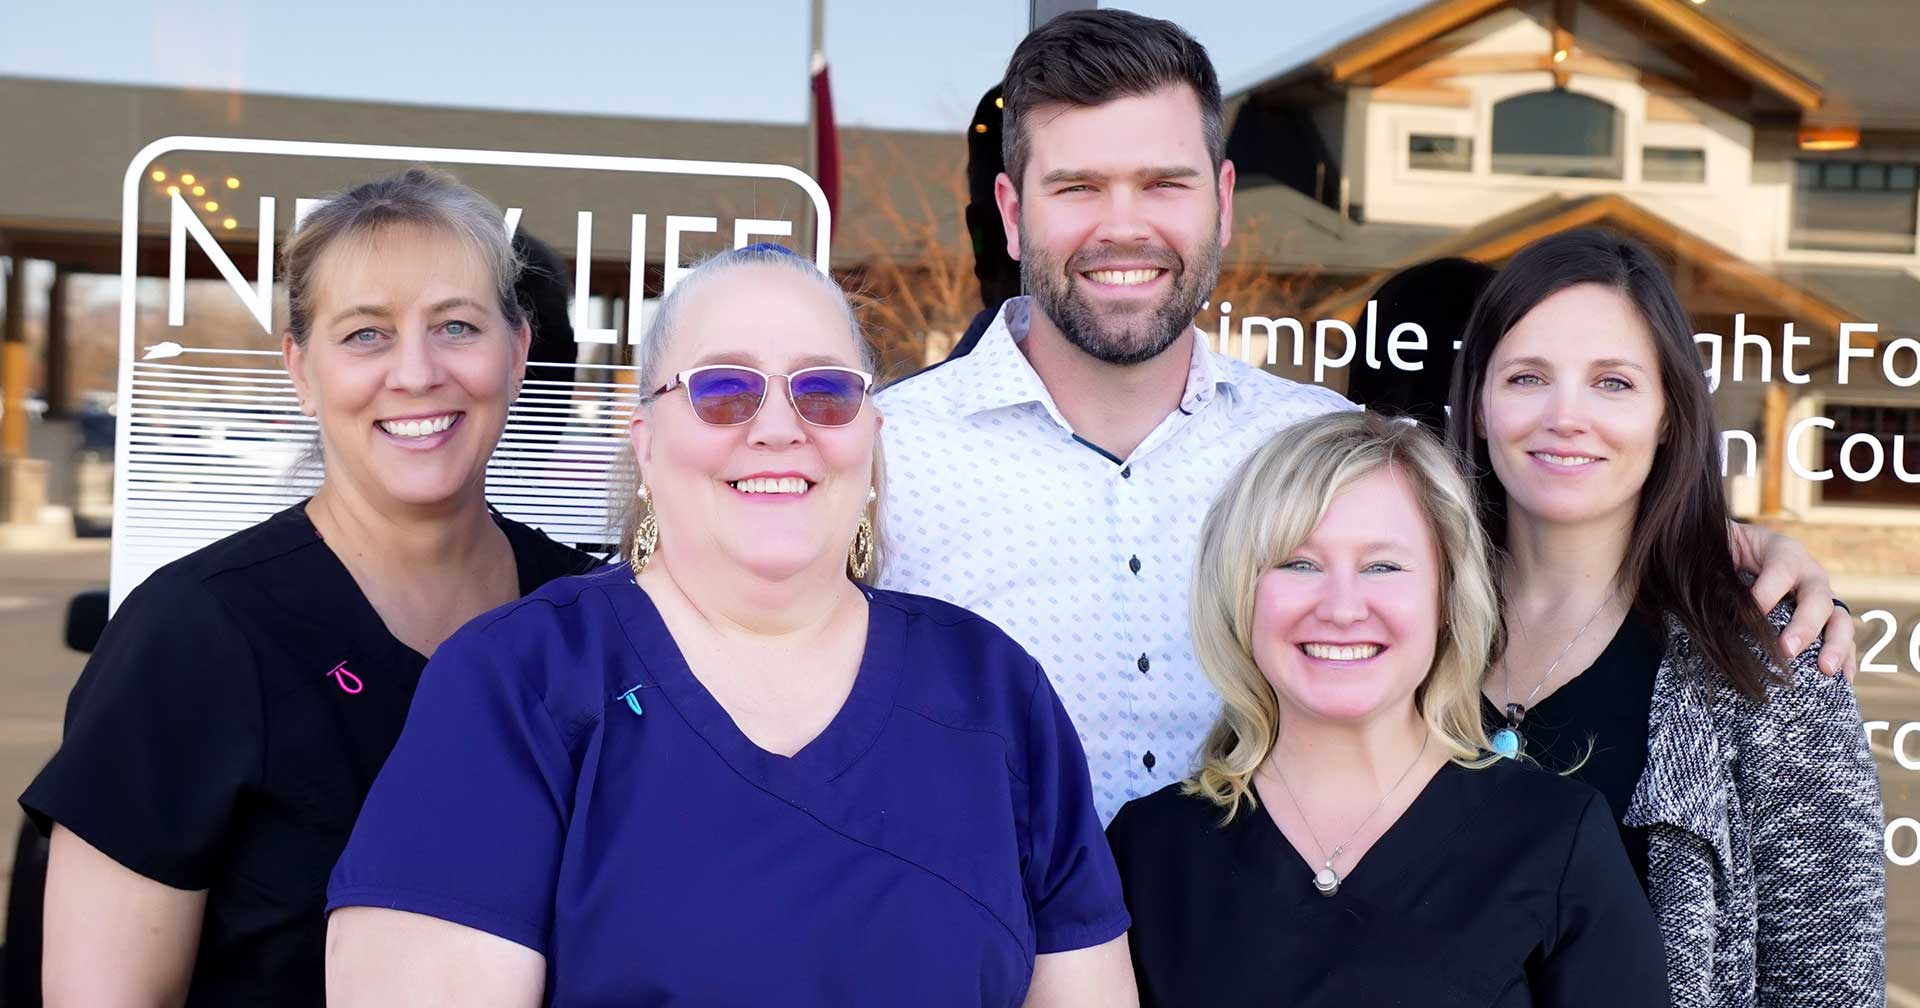 Meet our team at New Life Chiropractic in Montrose, CO